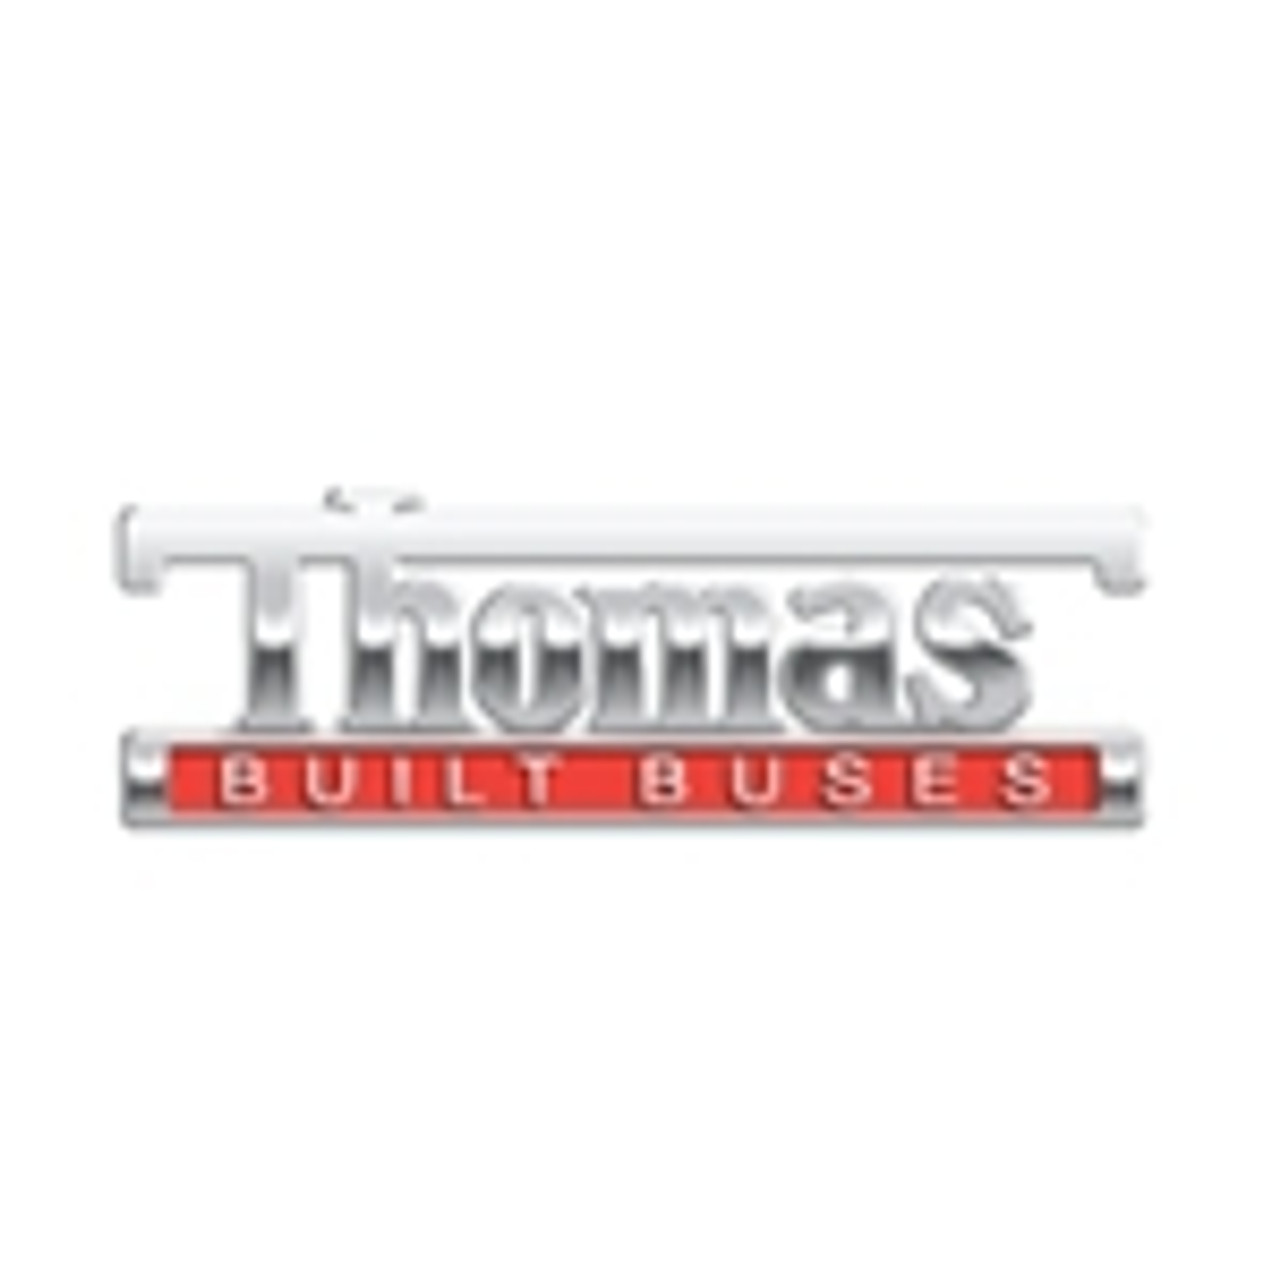 Thomas Built Bus